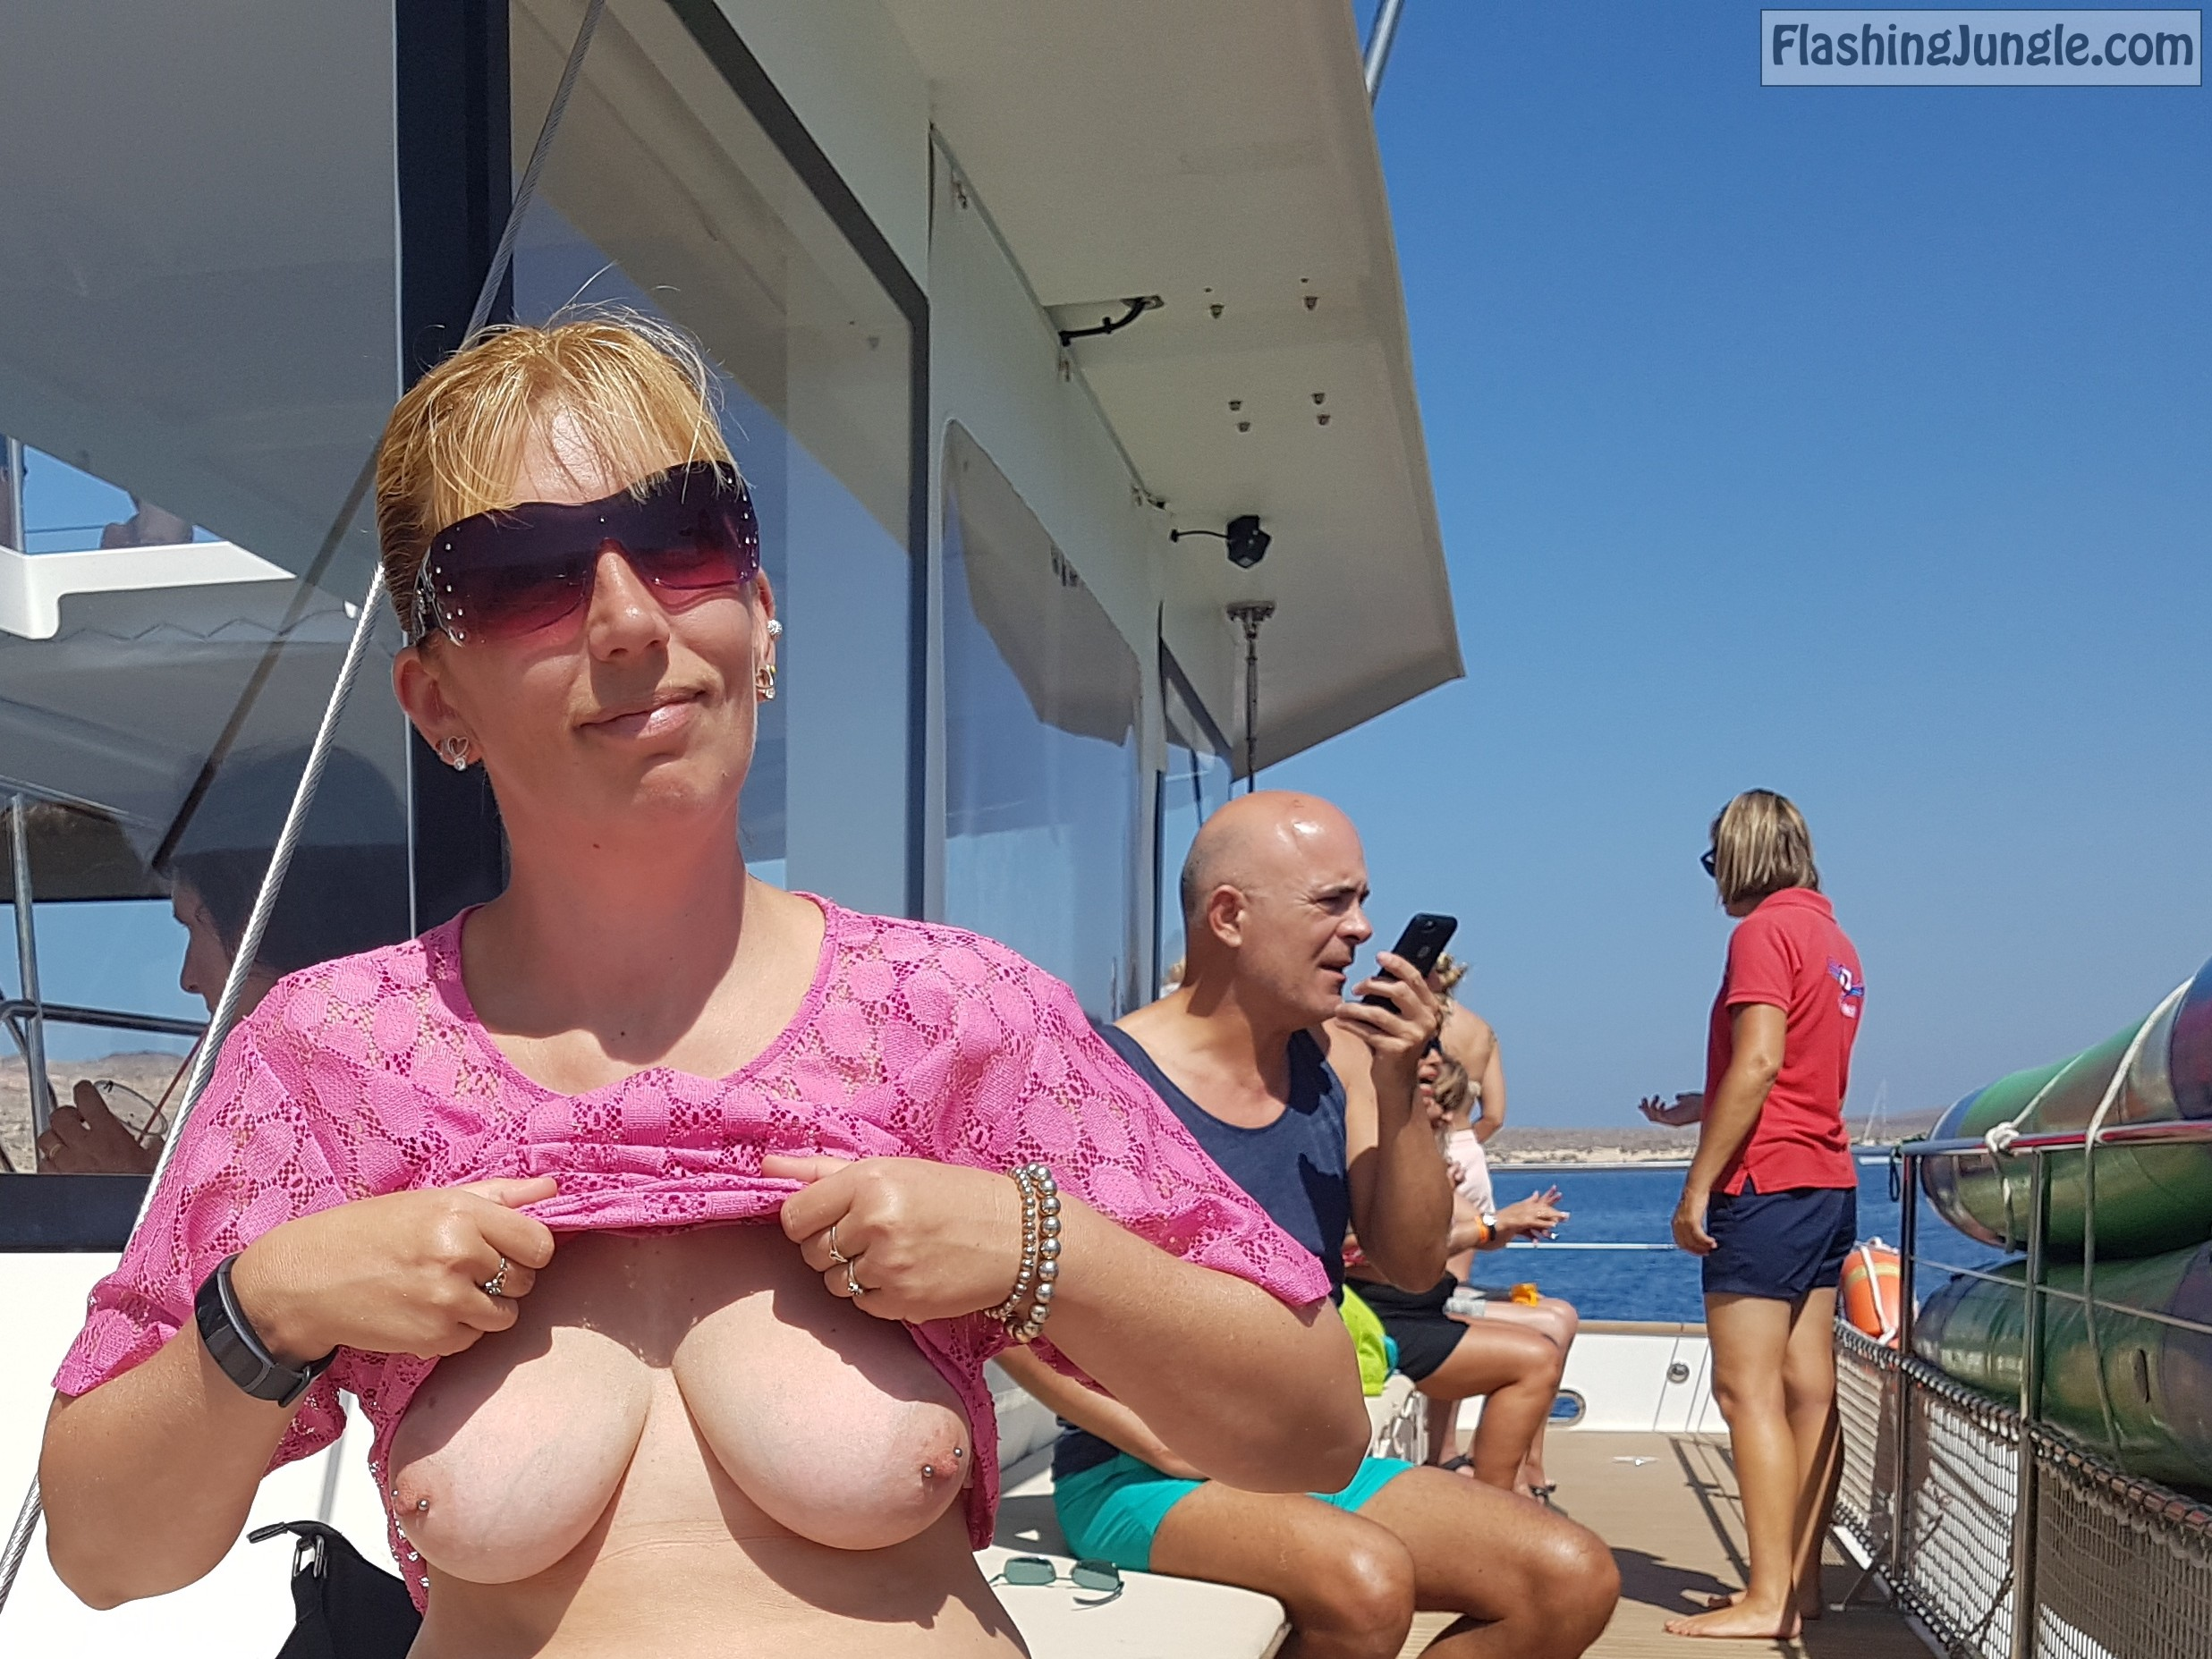 just some of me flashing – KittyD